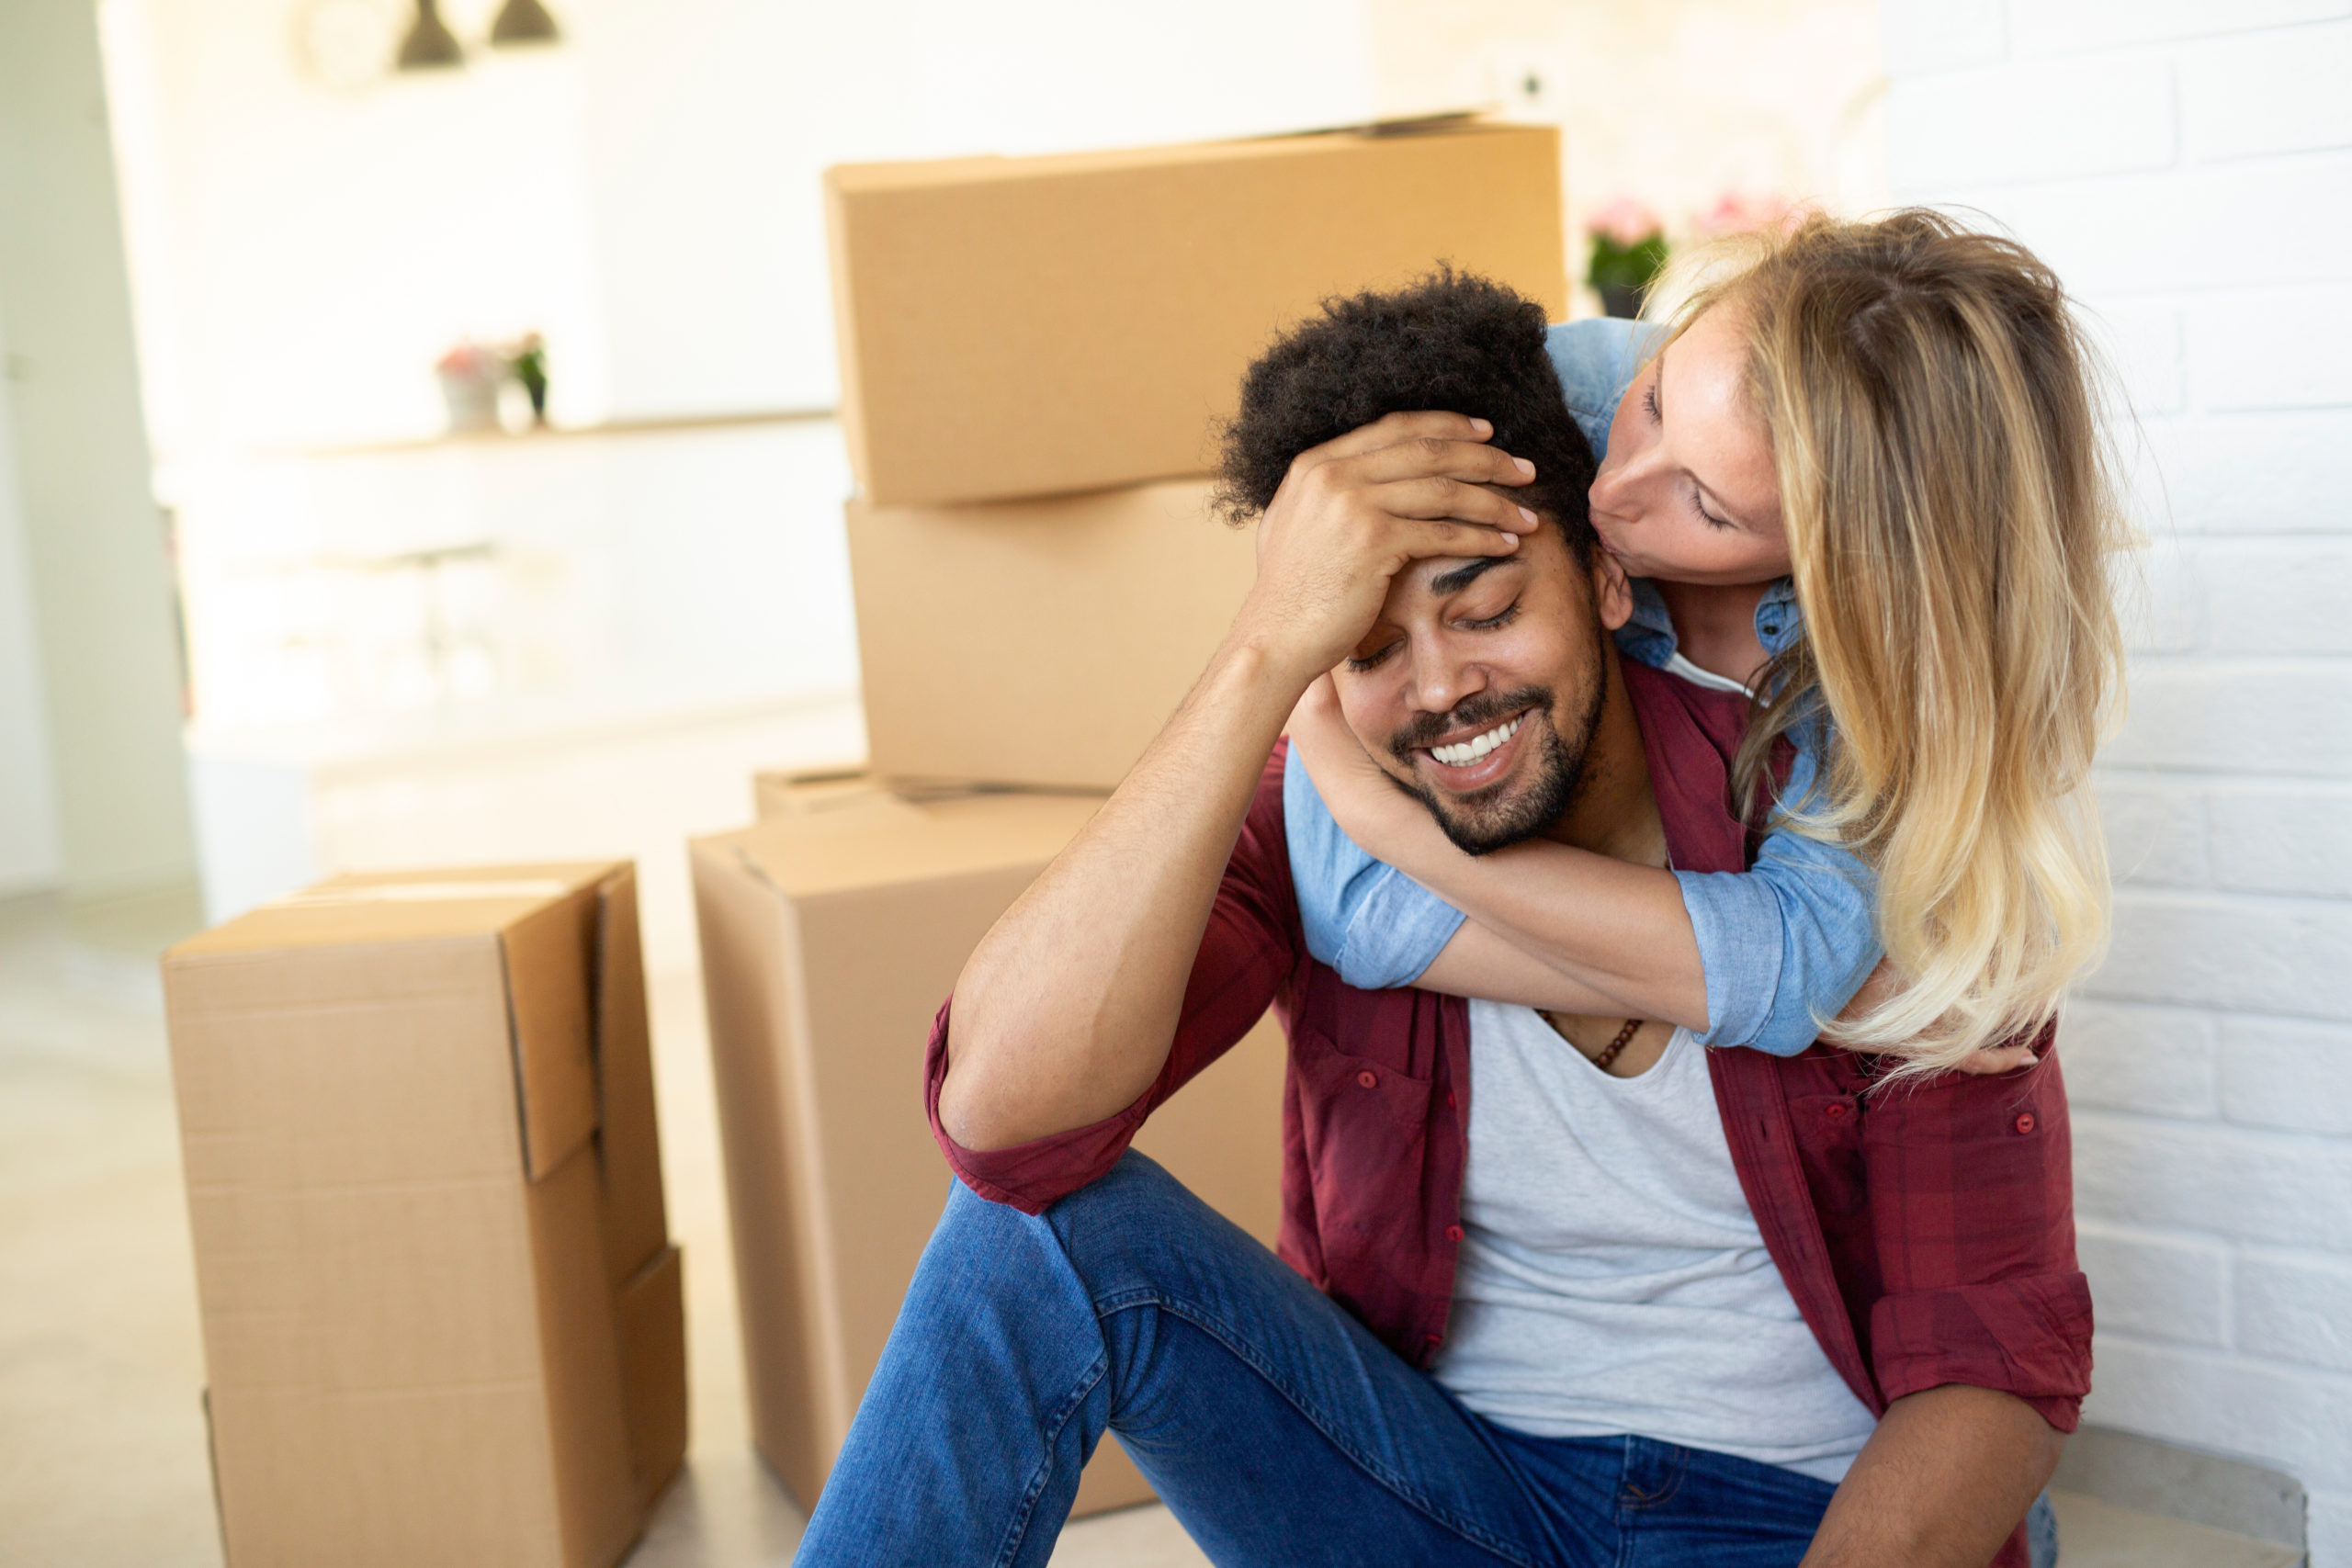 House Moving Companies' Advice on the Top 6 Challenges When Moving Out of Your House